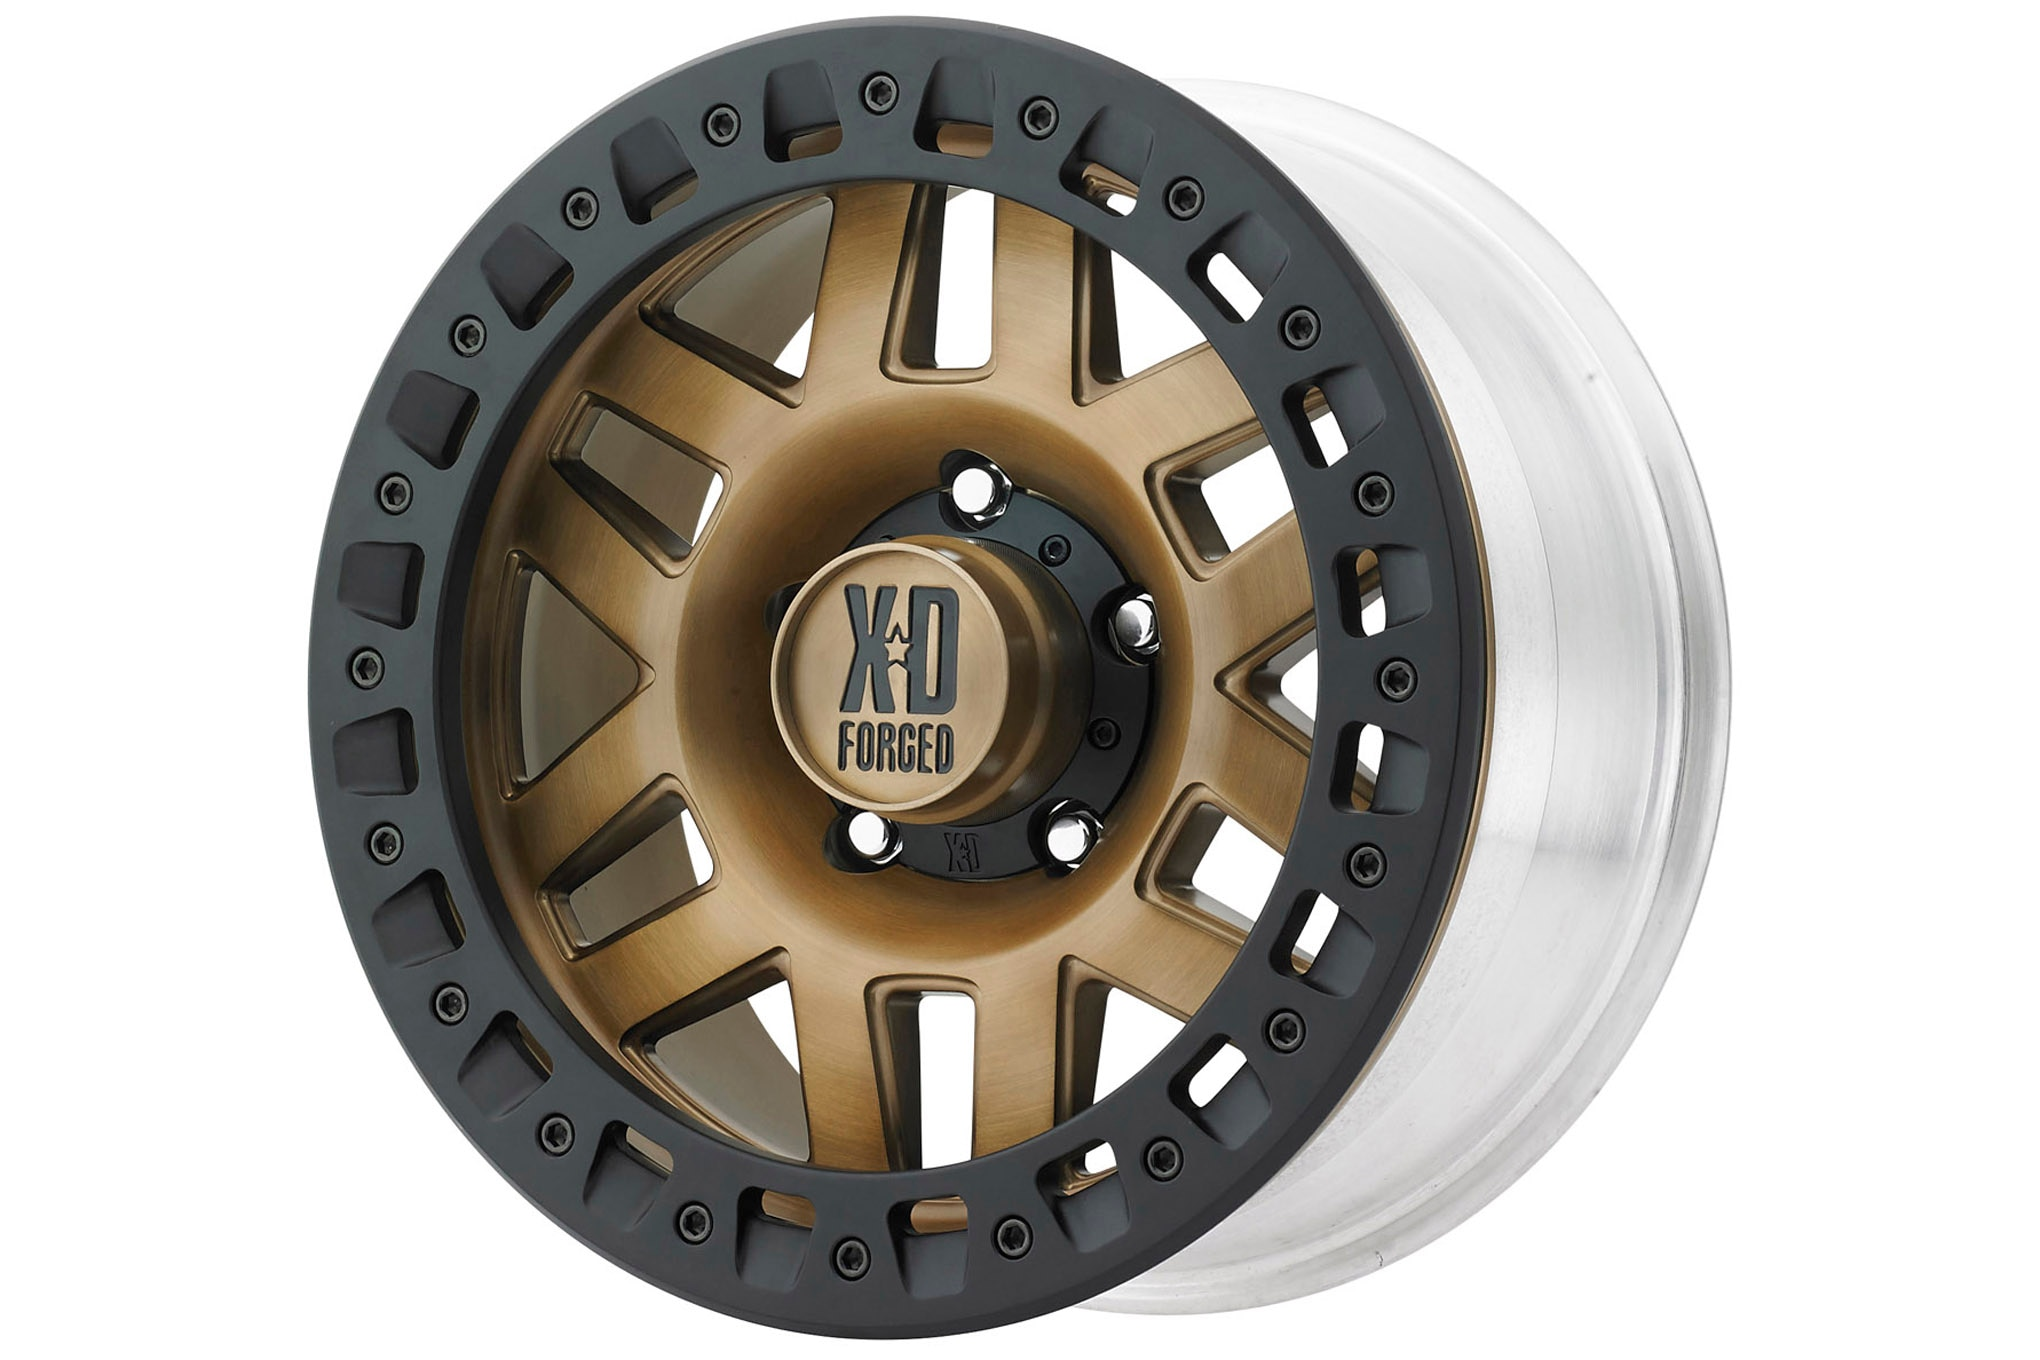 In case you hadn't noticed, bronze-colored wheels are coming on strong, and have become a very popular treatment for a Jeep wheel. This forged aluminum monoblock beadlock from KMC XD is a perfect example. The 2017 SEMA Show had wall-to-wall wheels, and lots of them were sporting bronze in one way or another. Who knows what next year's trend will be?